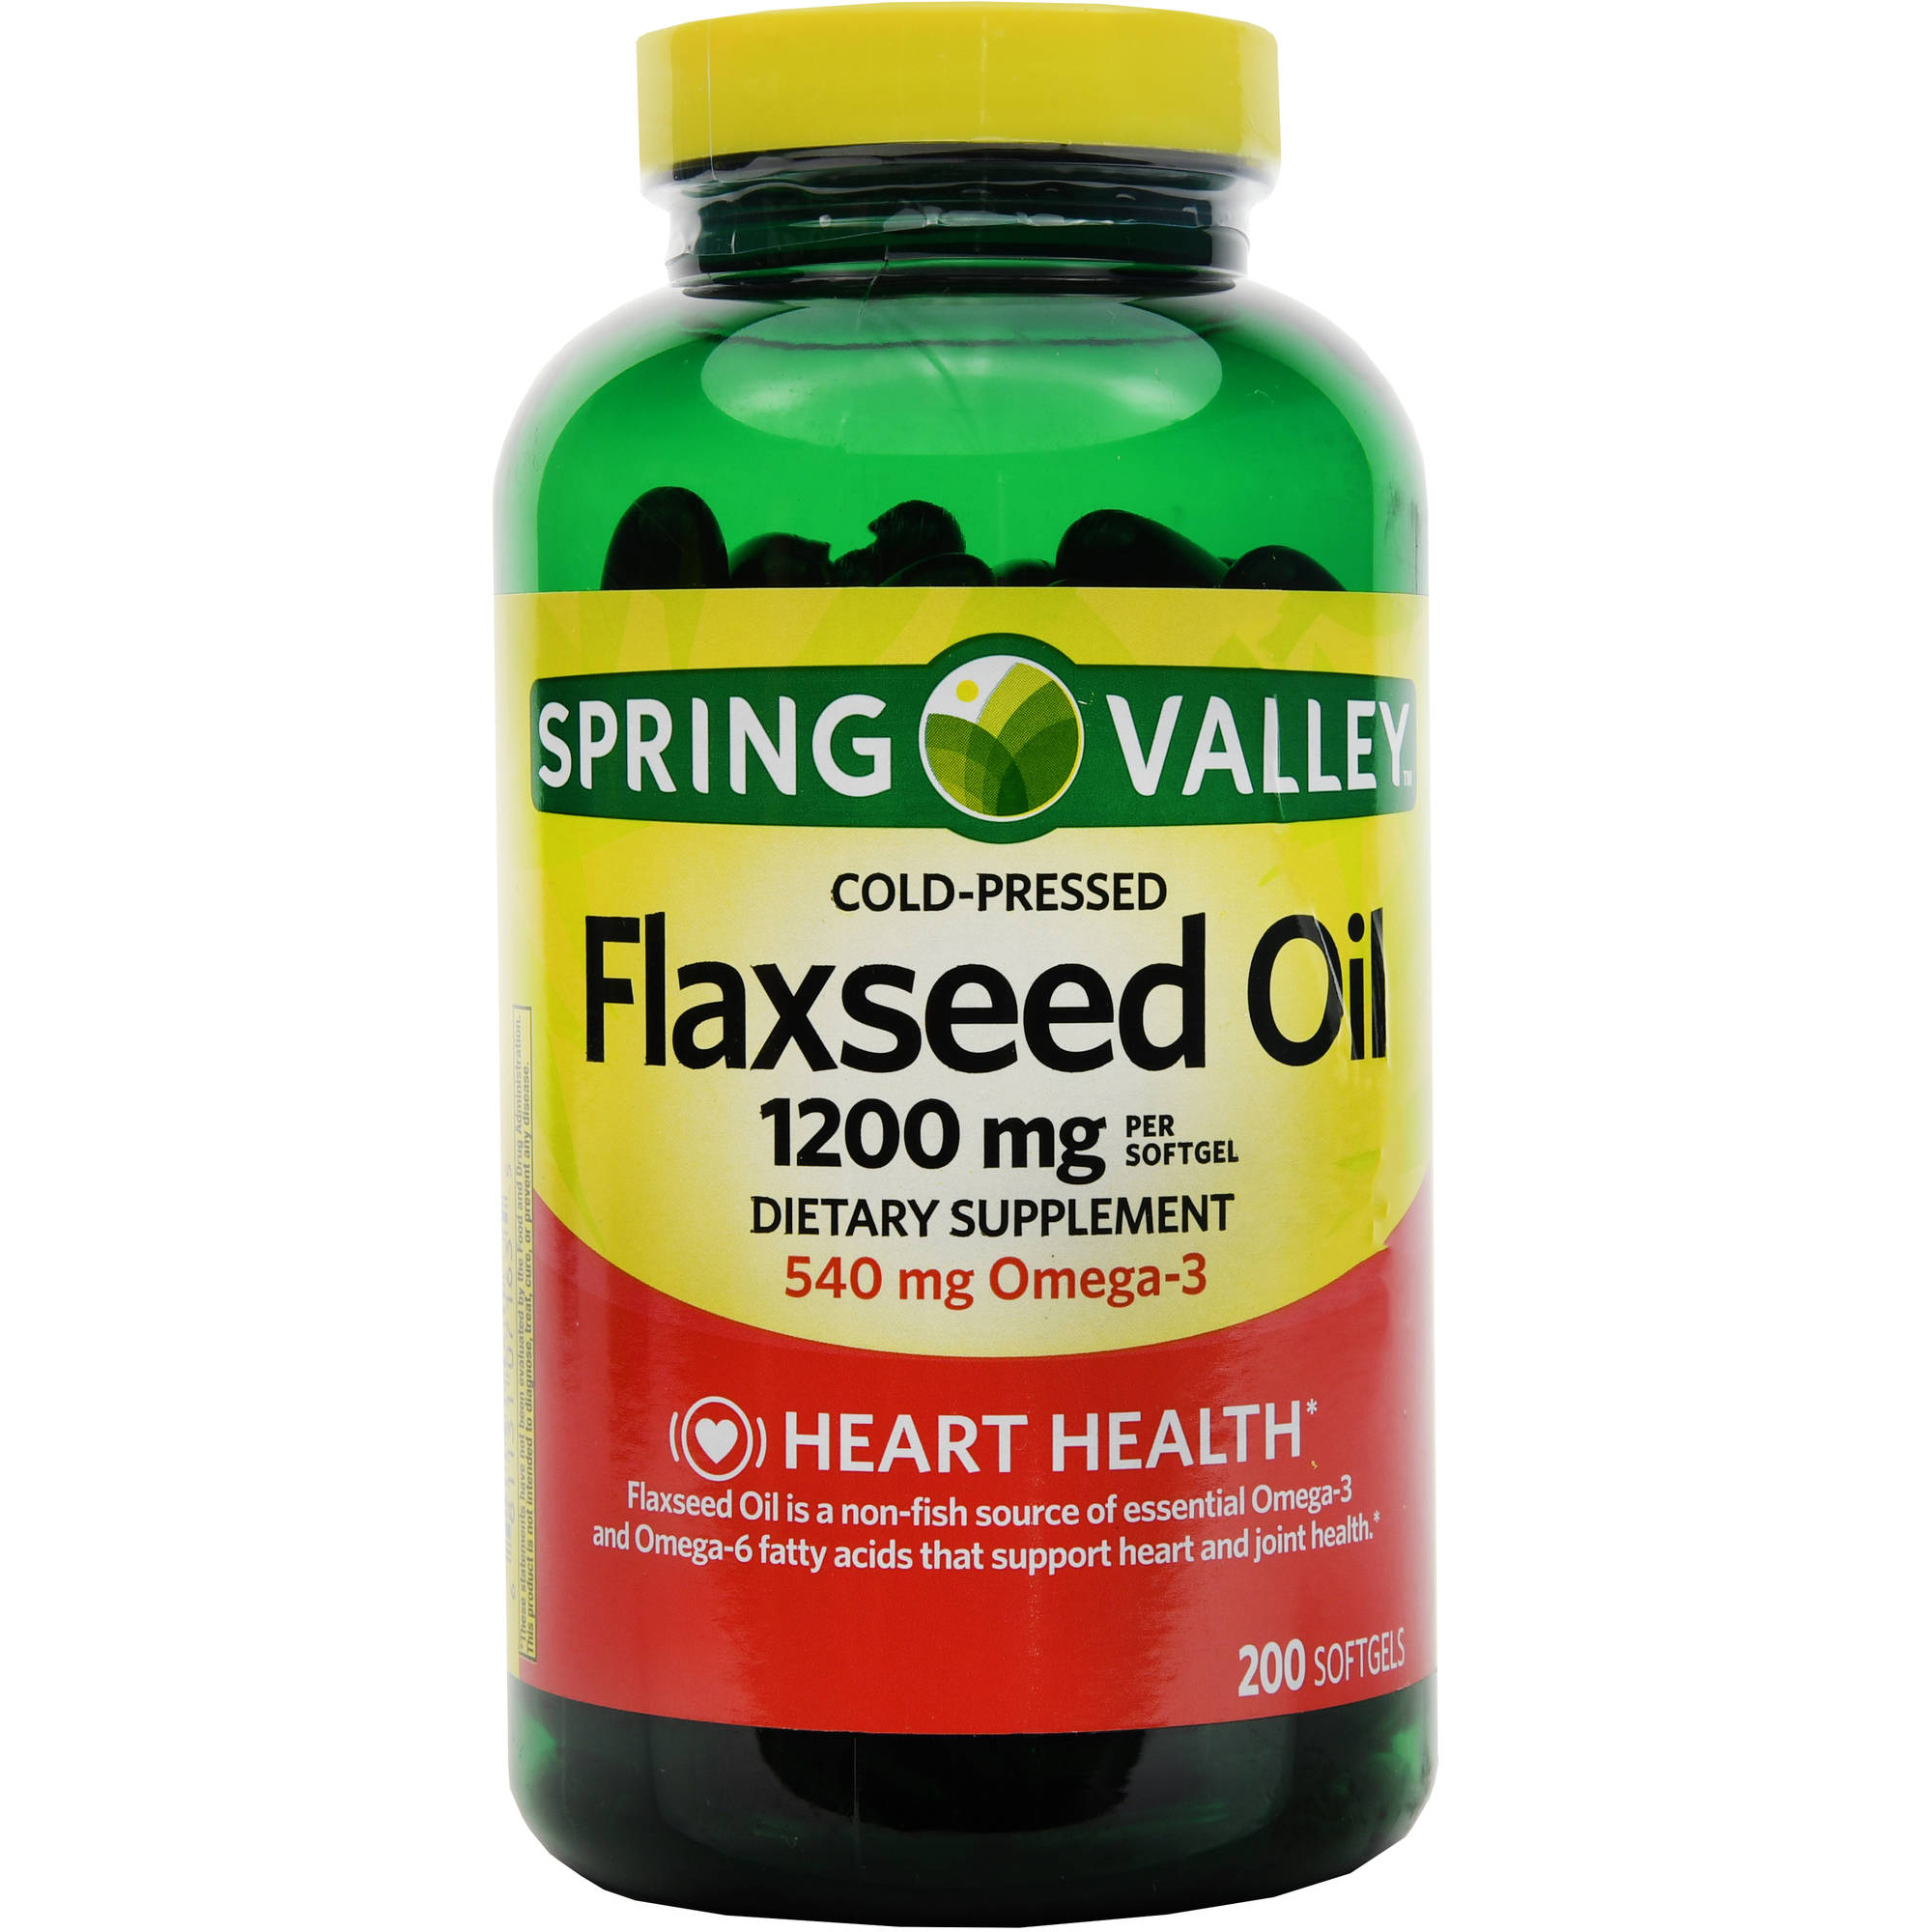 Spring Valley Flaxseed Dietary Supplement Softgels, 1200mg, 200 count